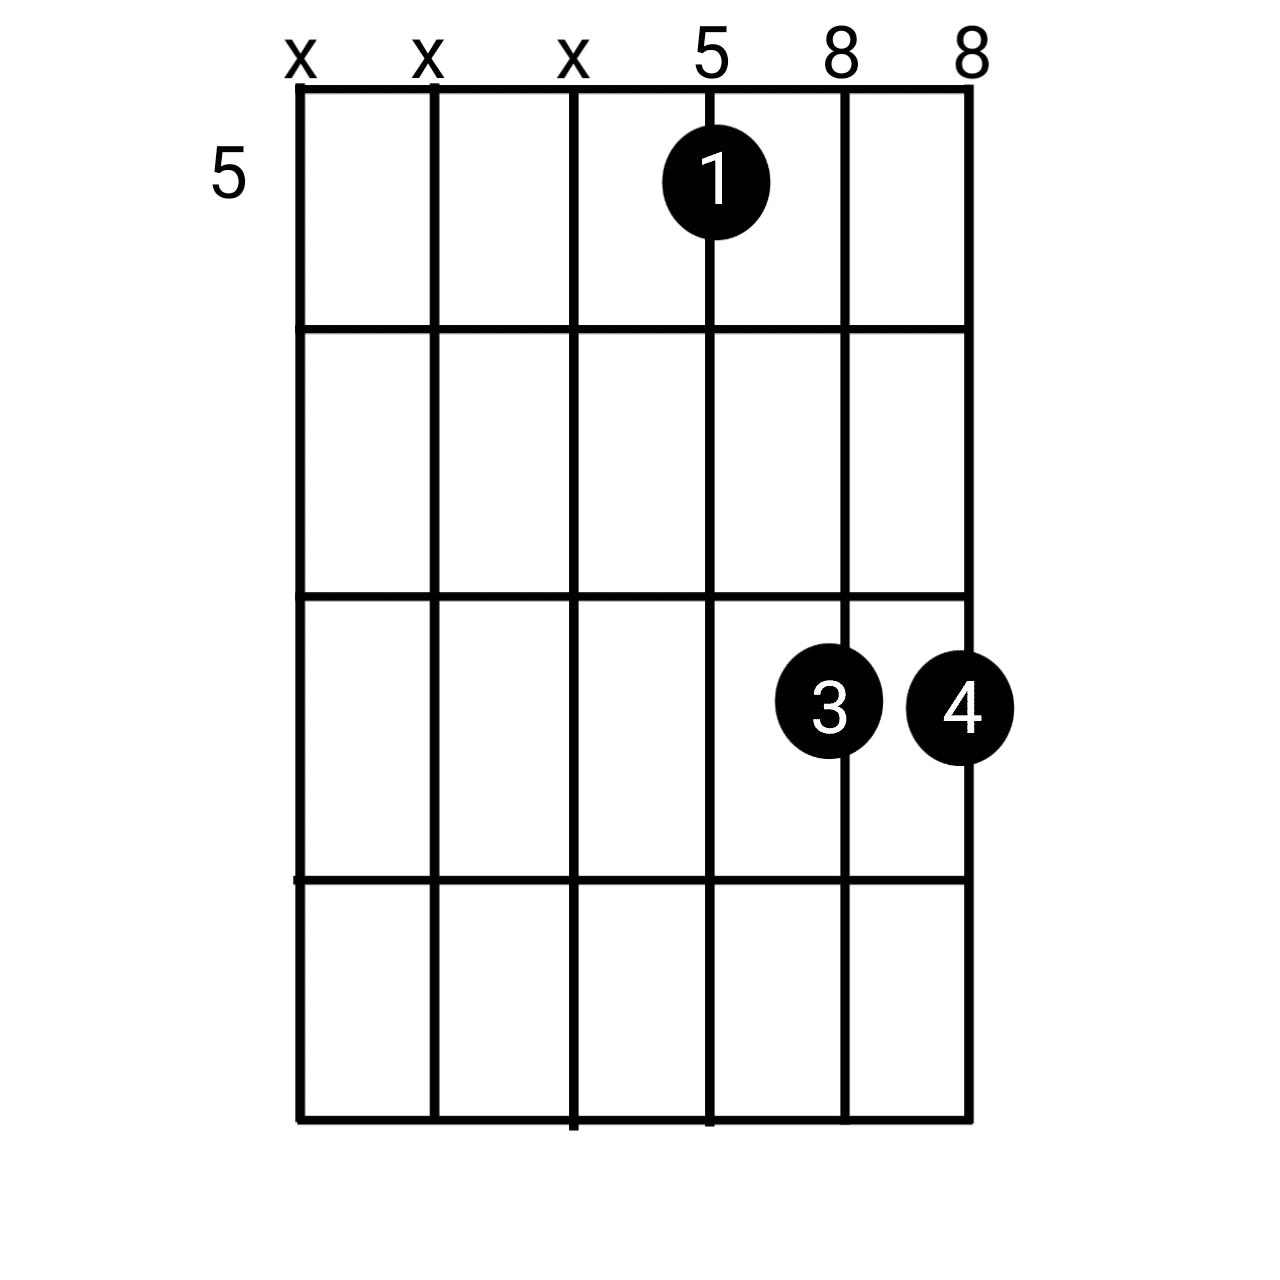 C5 Chords in 5th position